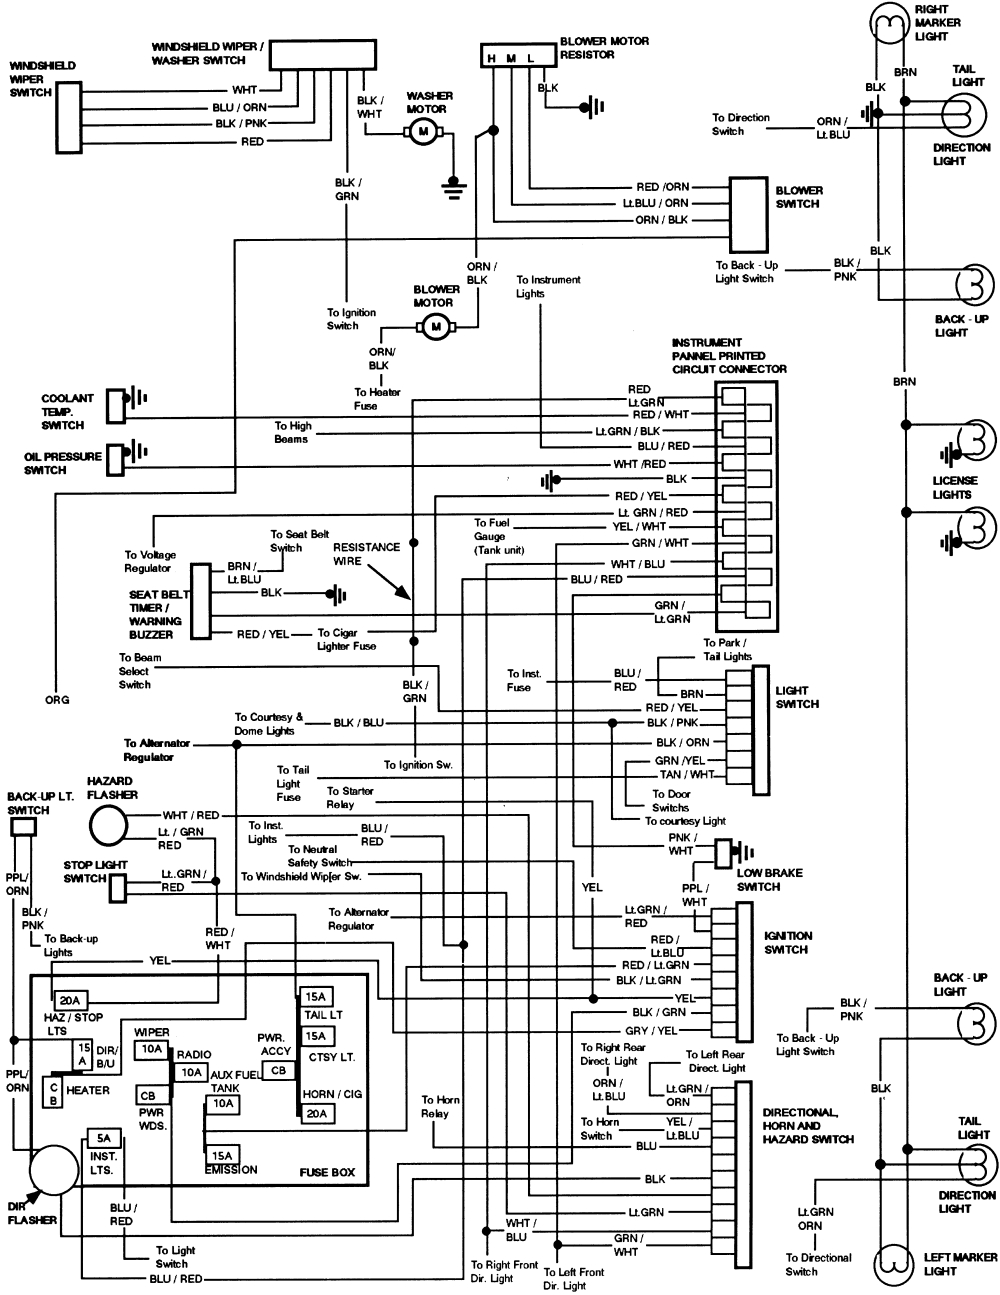 1984 ford bronco instrument panel wiring diagram all 1993 e150 fuse diagram 1999 ford f  [ 1000 x 1295 Pixel ]